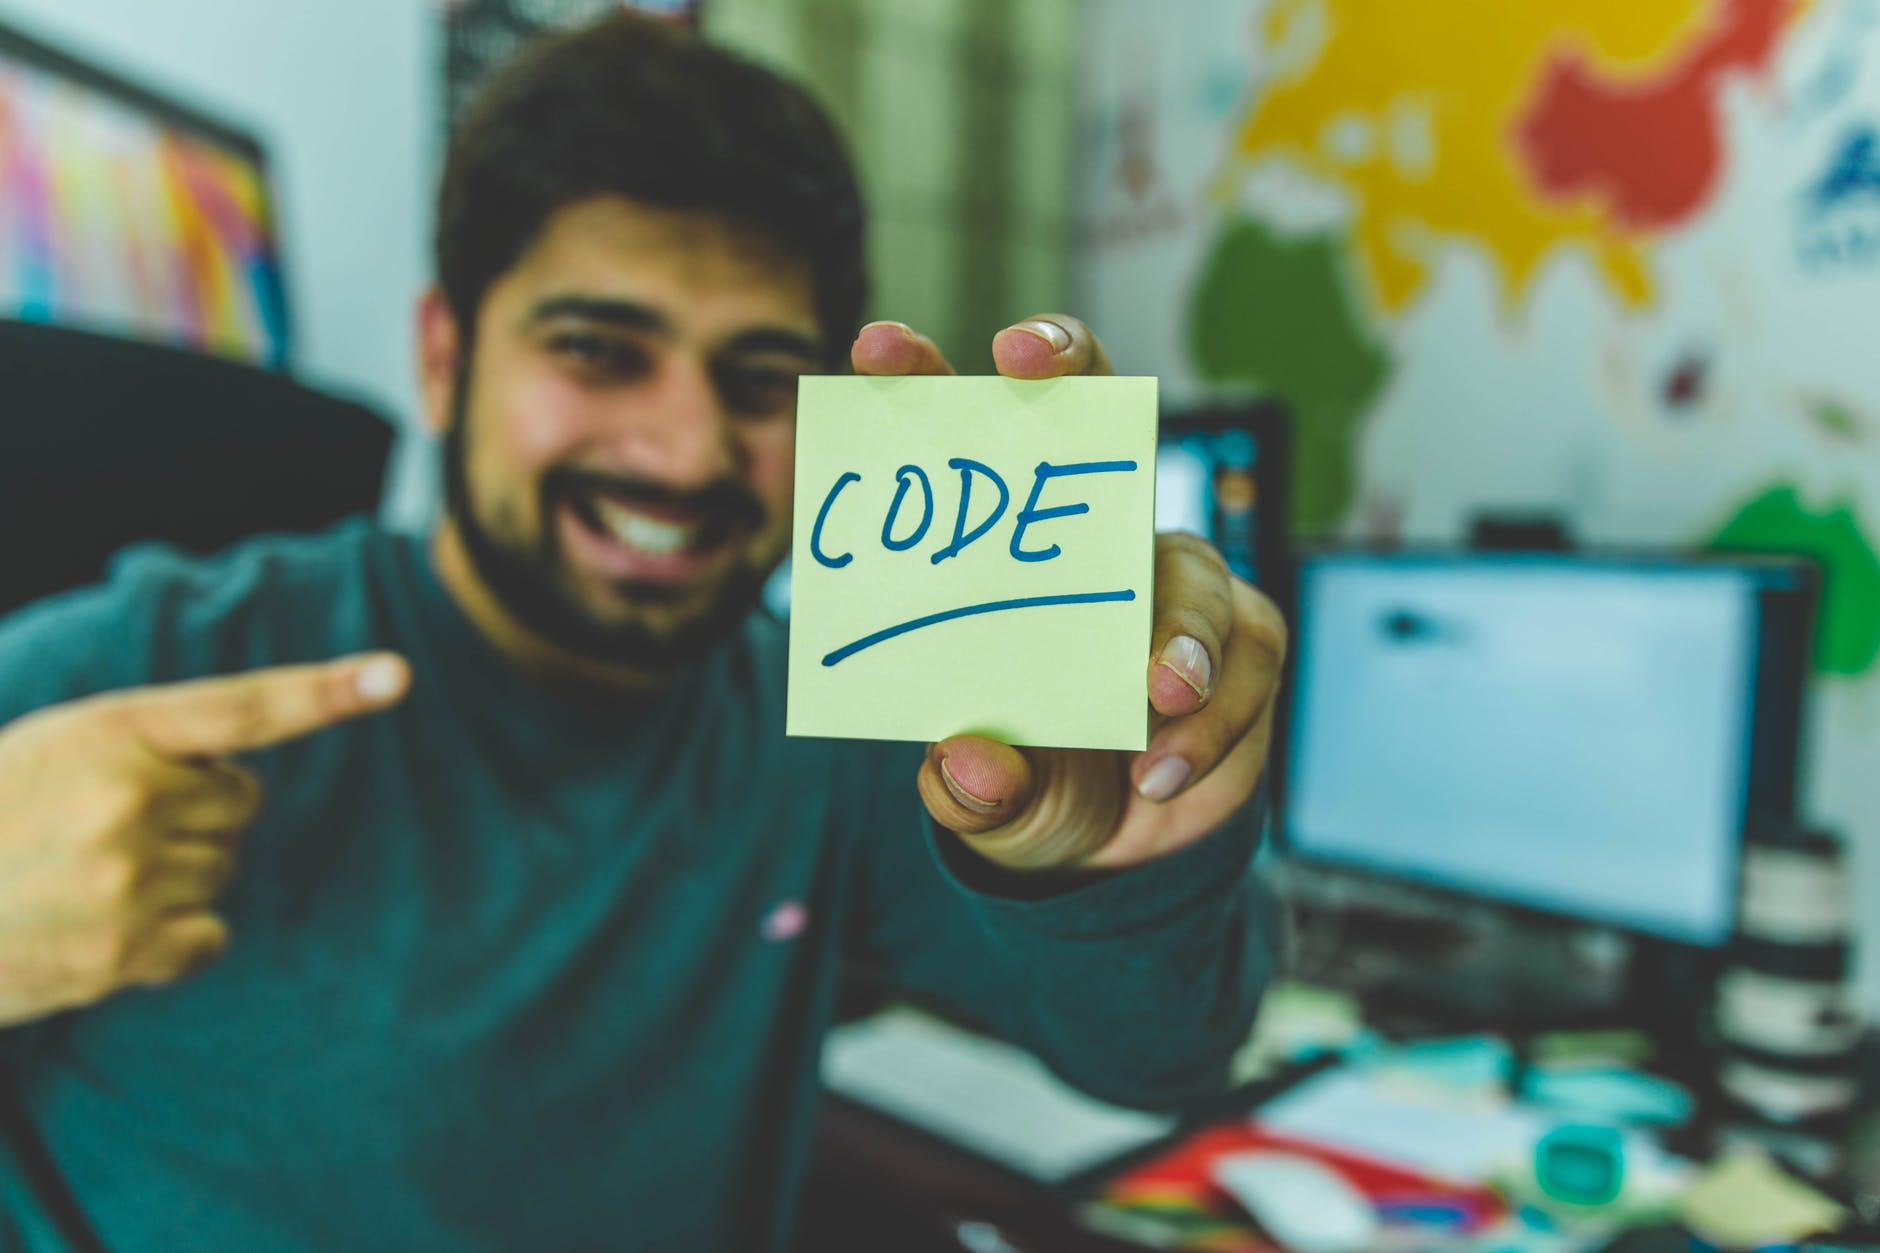 PHP vs Python which is better? Learn PHP & Python Programming in Ahmedabad